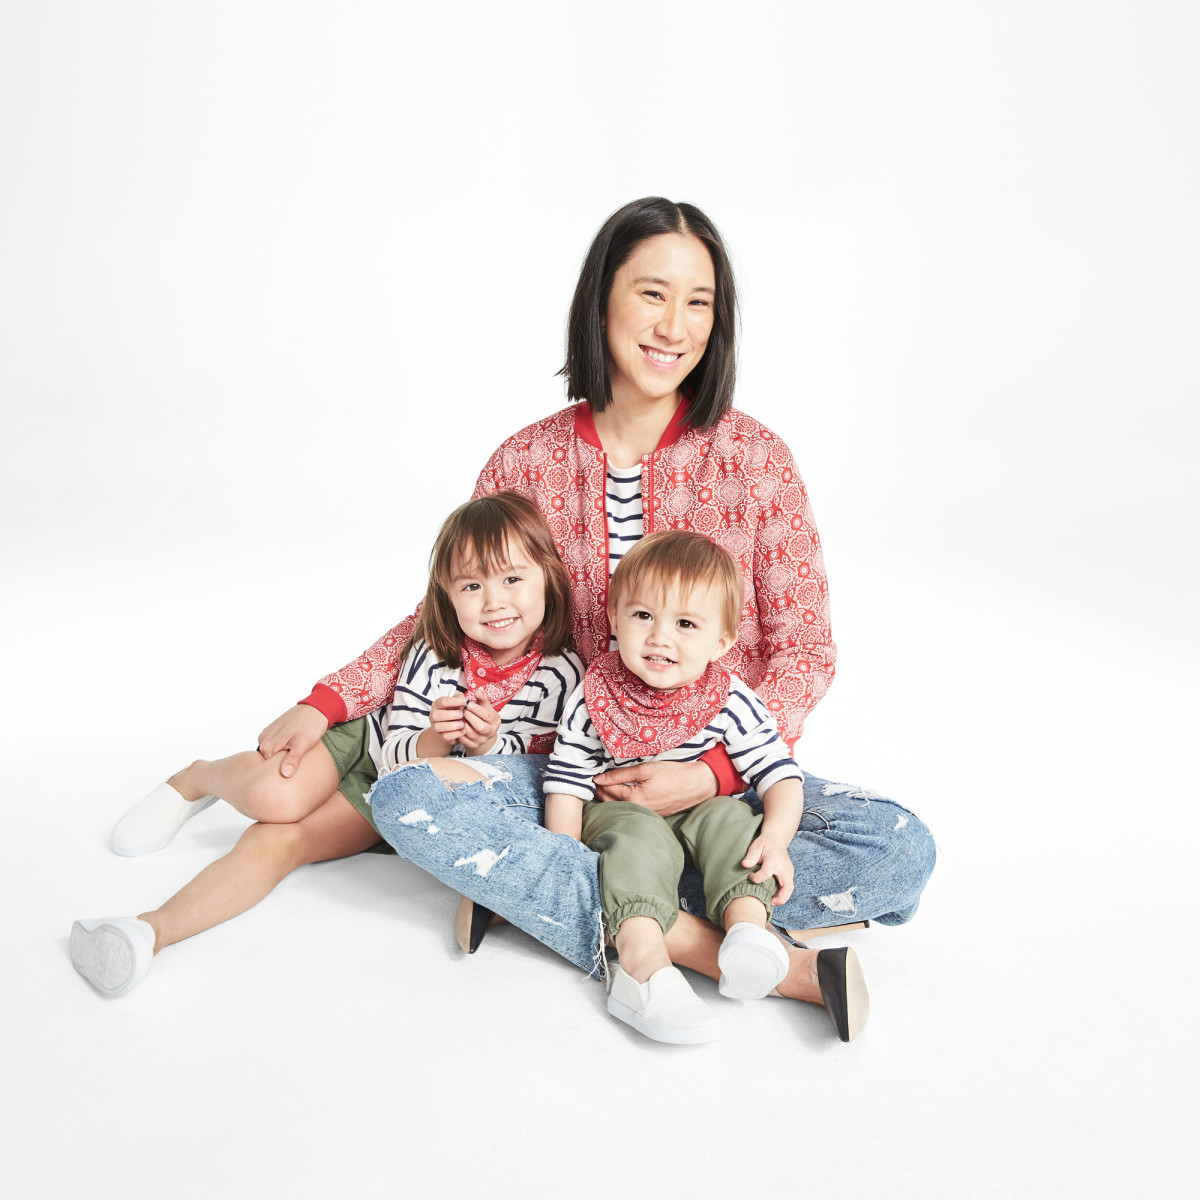 Eva Chen with her children Ren and Tao in her collection for Janie & Jack. Photo: Courtesy of Janie & Jack